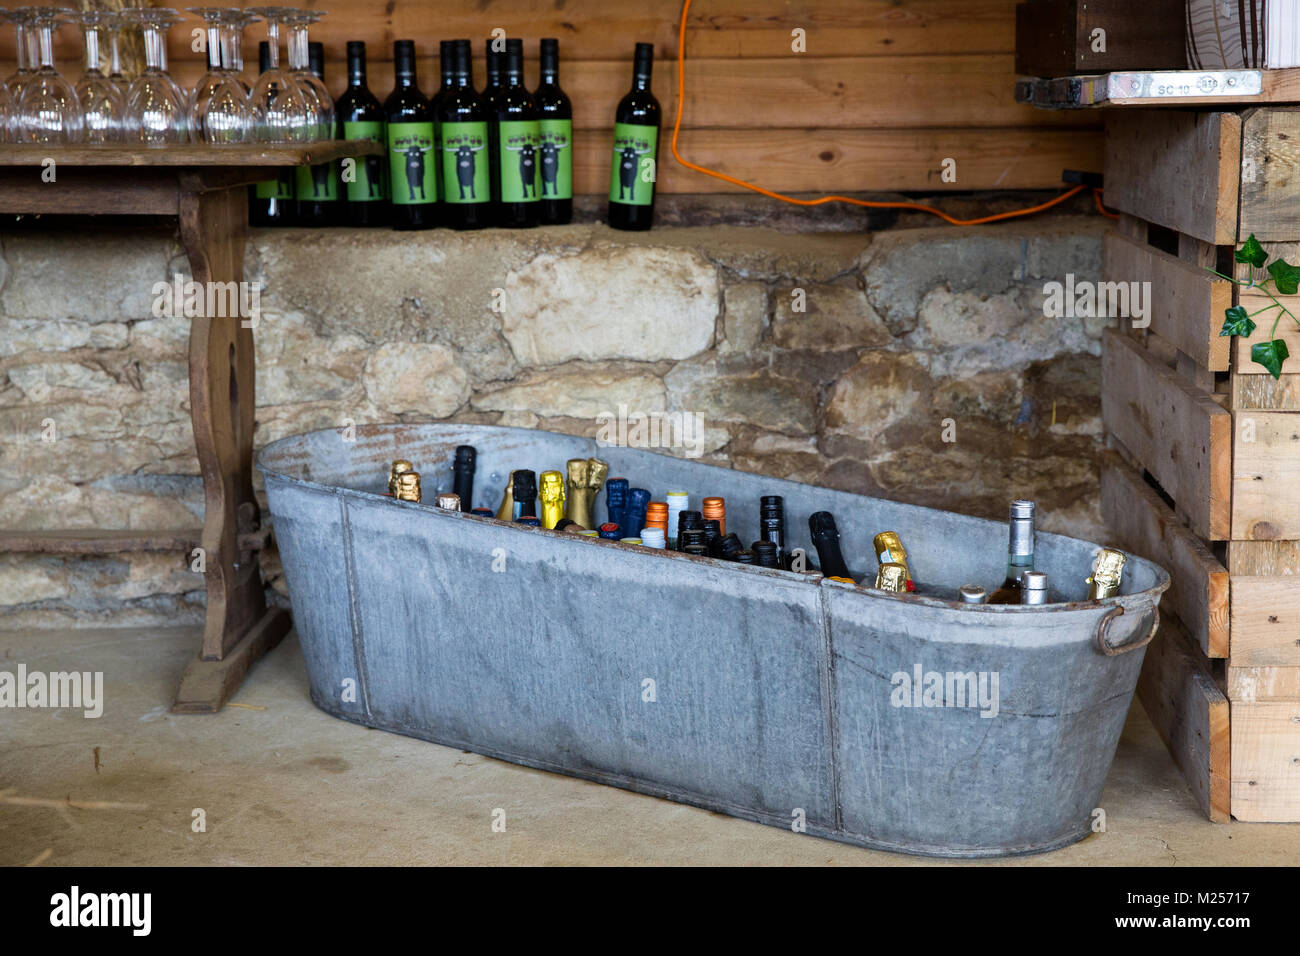 Barn with tin bath full of bottle of drink, beer bottles and wooden table with glasses - Stock Image